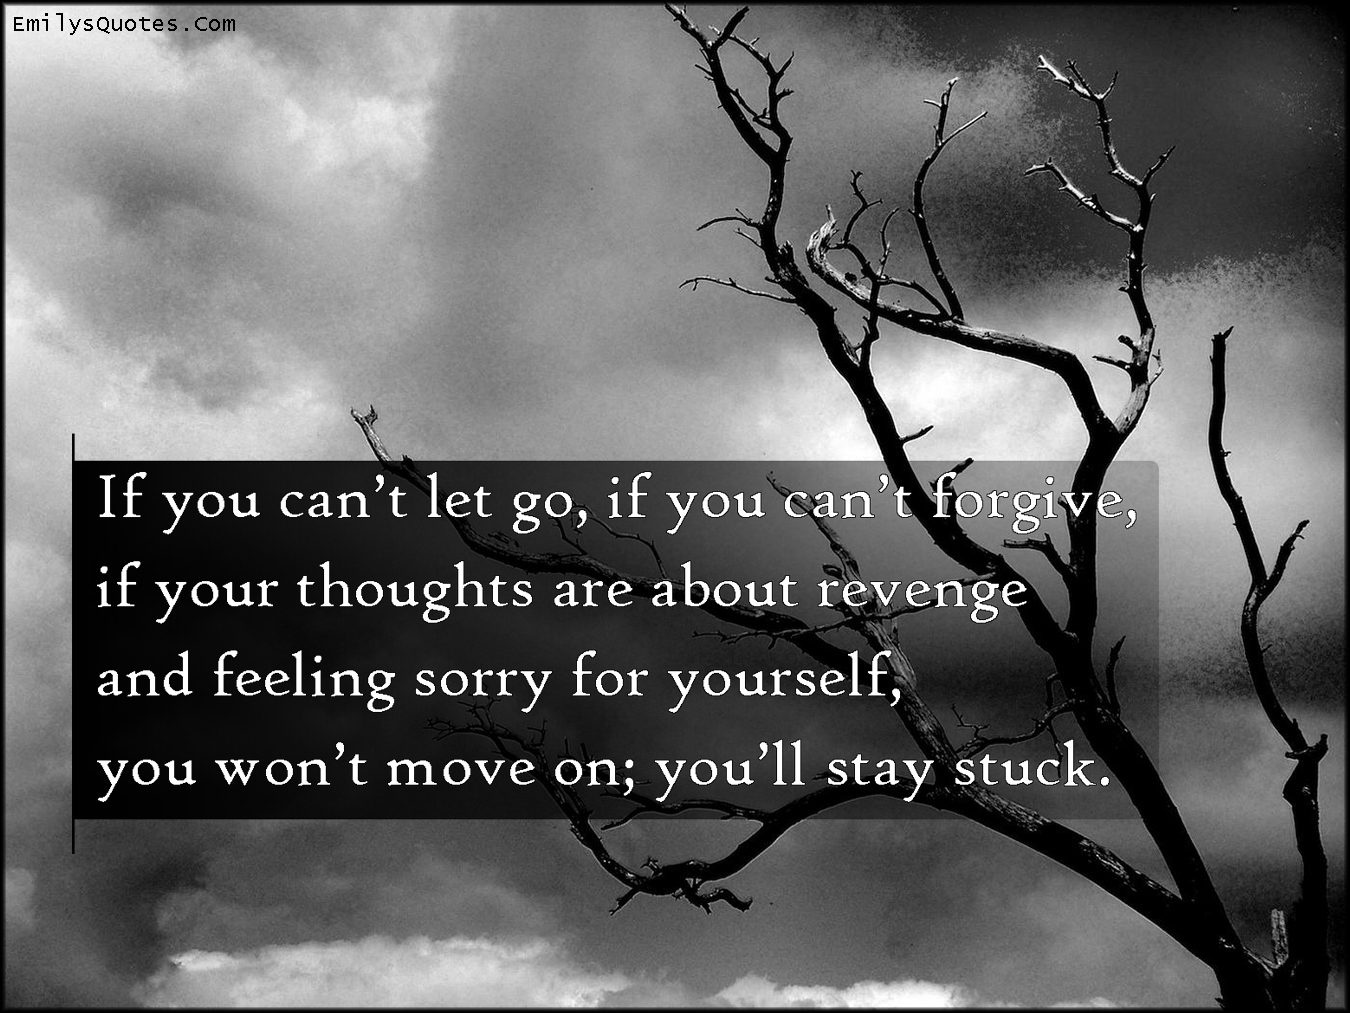 Love Move On Quotes If You Can't Let Go If You Can't Forgive If Your Thoughts Are